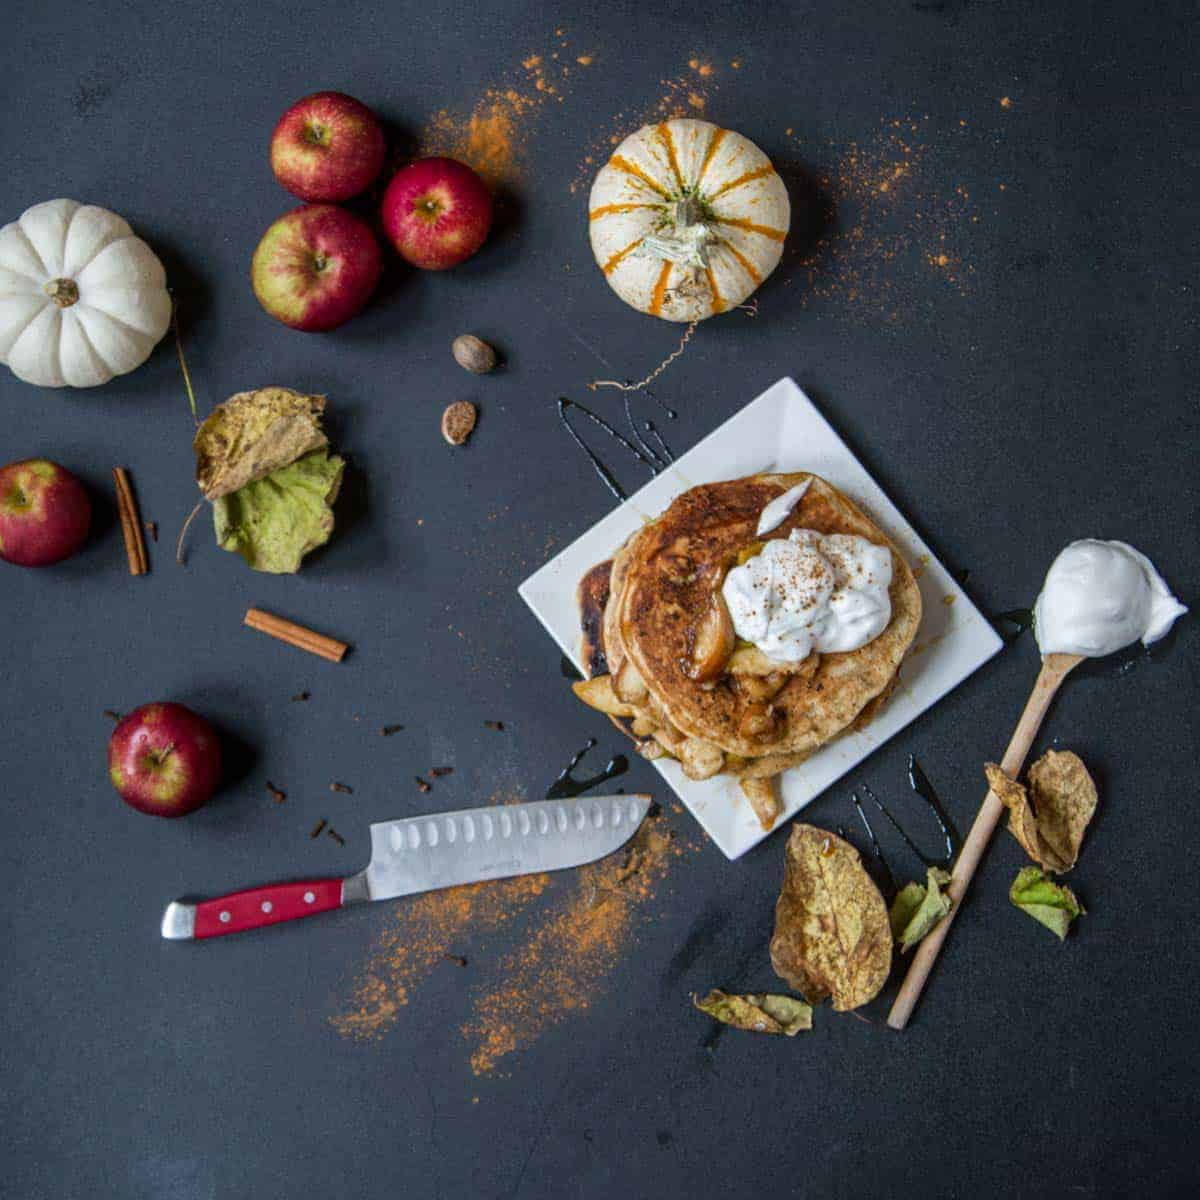 Apple pie pancakes on black background surrounded by apples